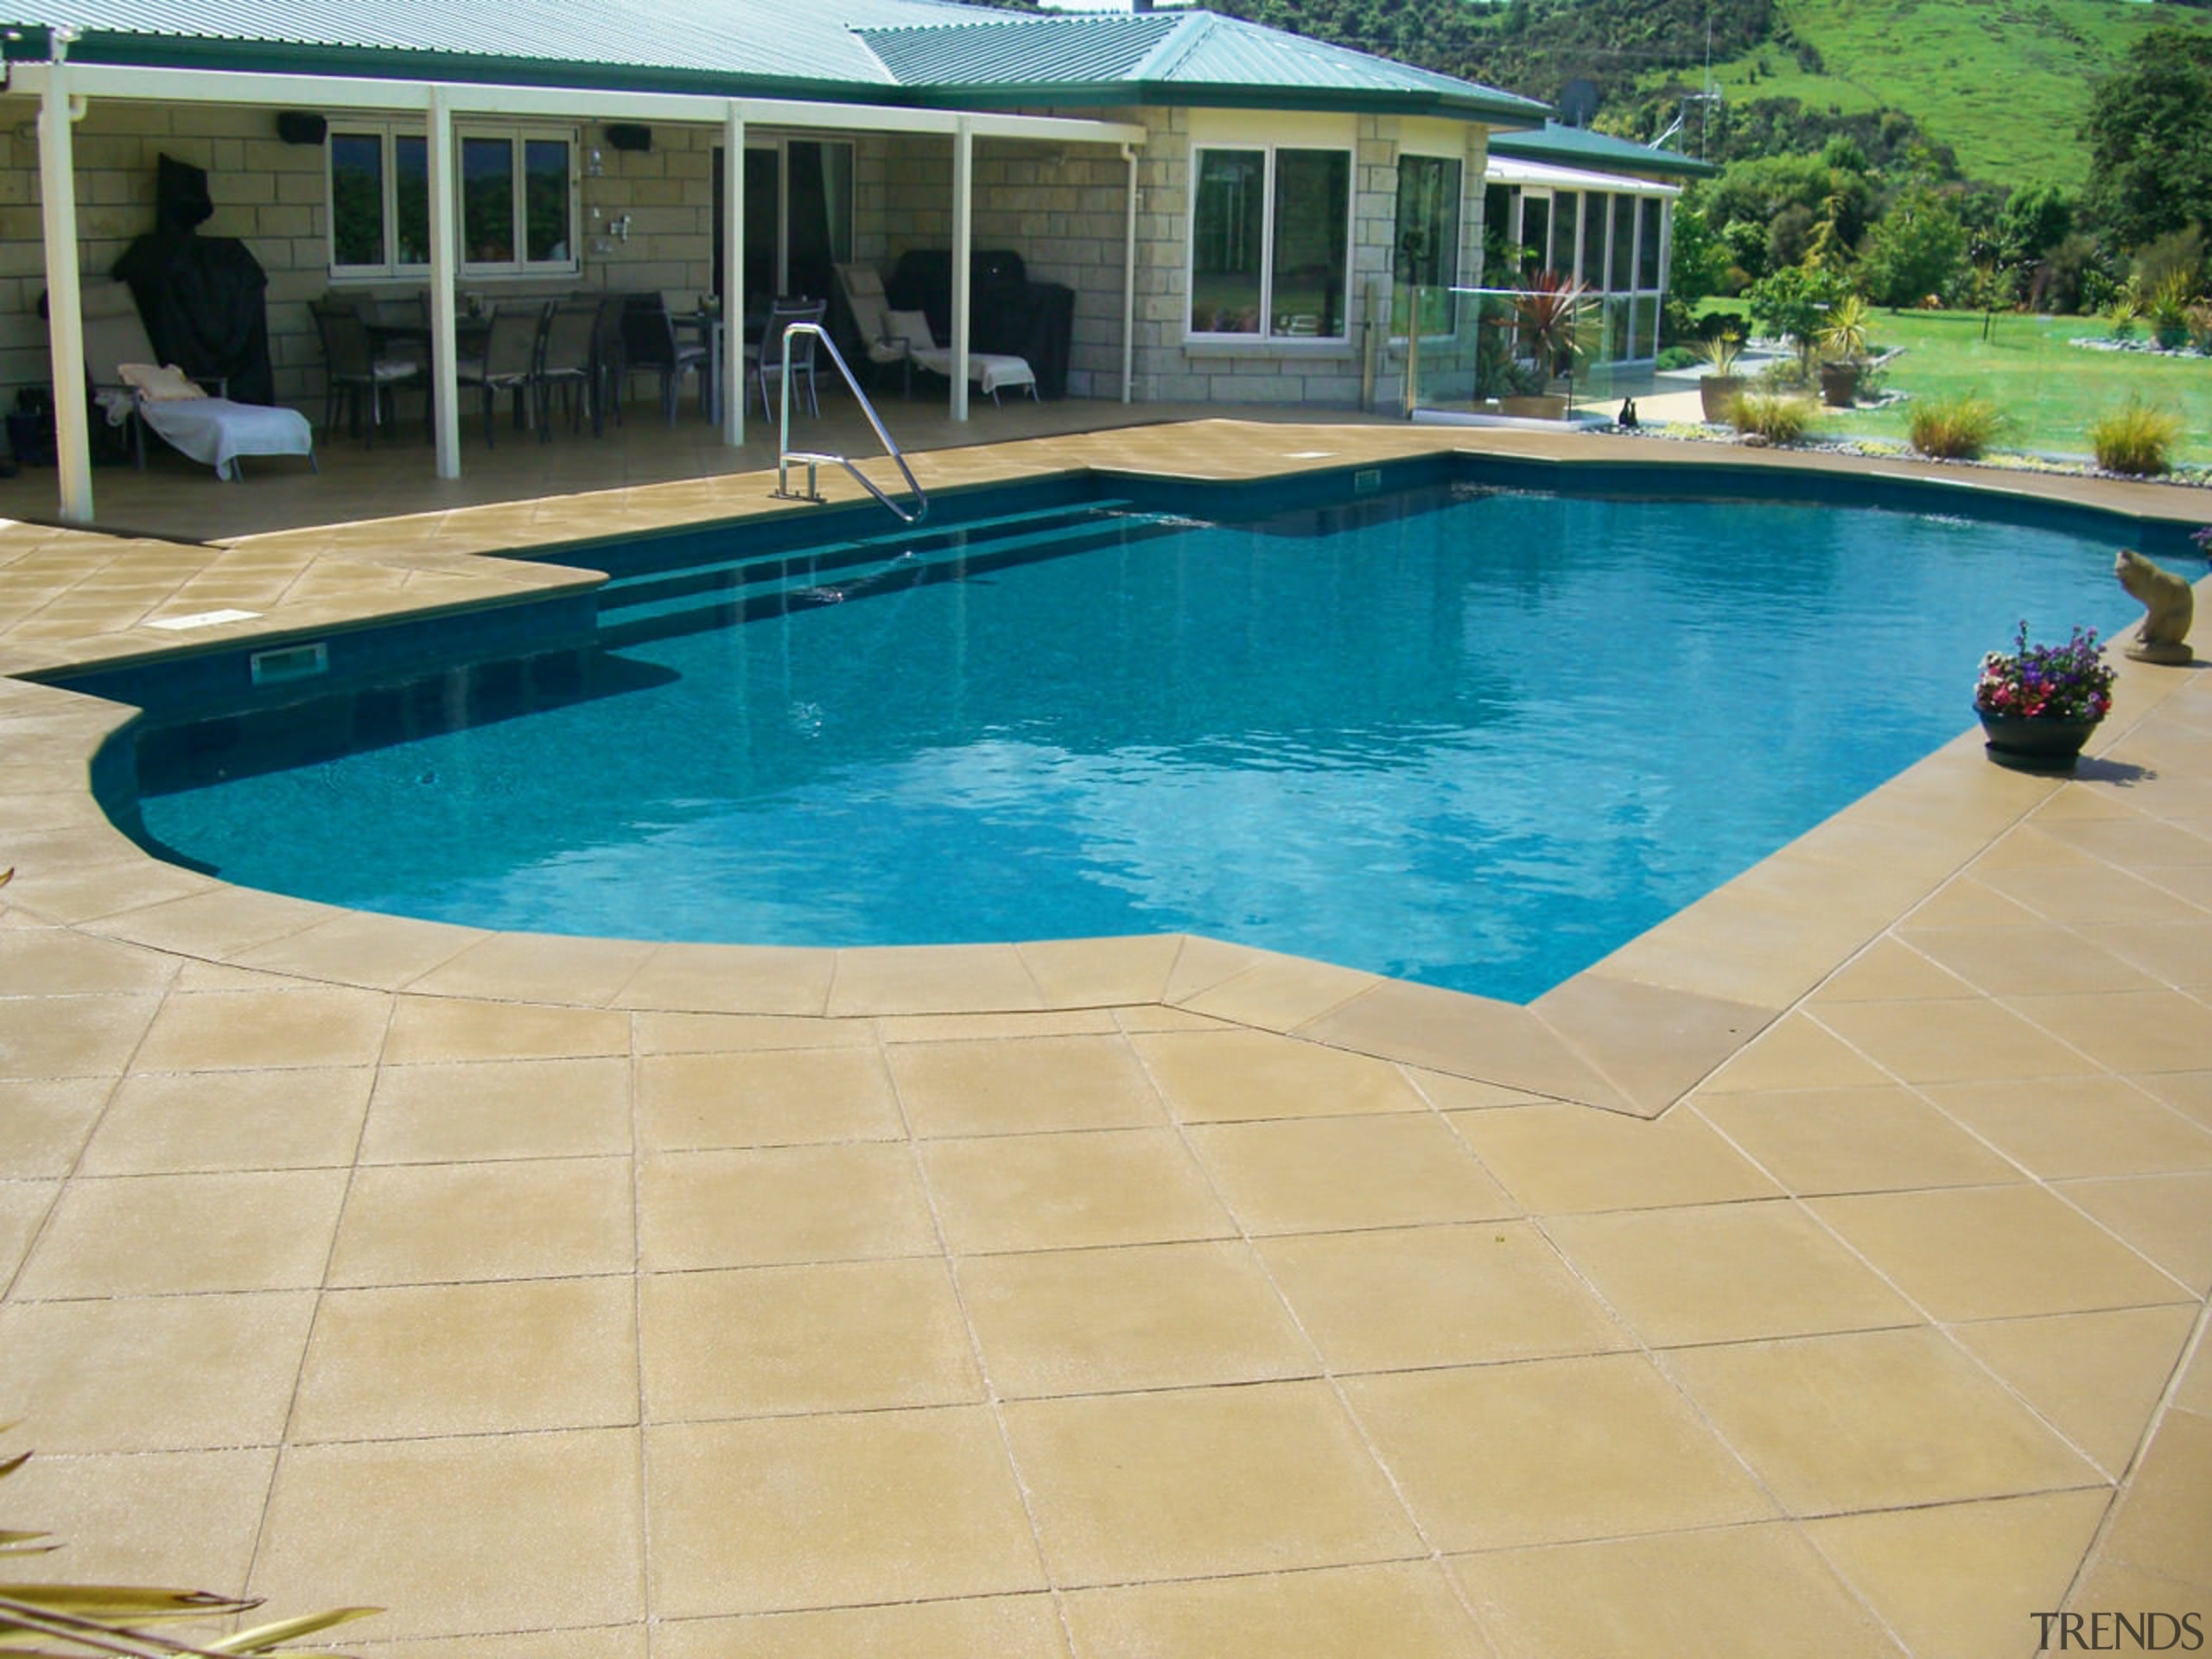 Cascades highly durable Aqualux 770 interiors last over composite material, floor, flooring, leisure, outdoor structure, property, real estate, swimming pool, tile, orange